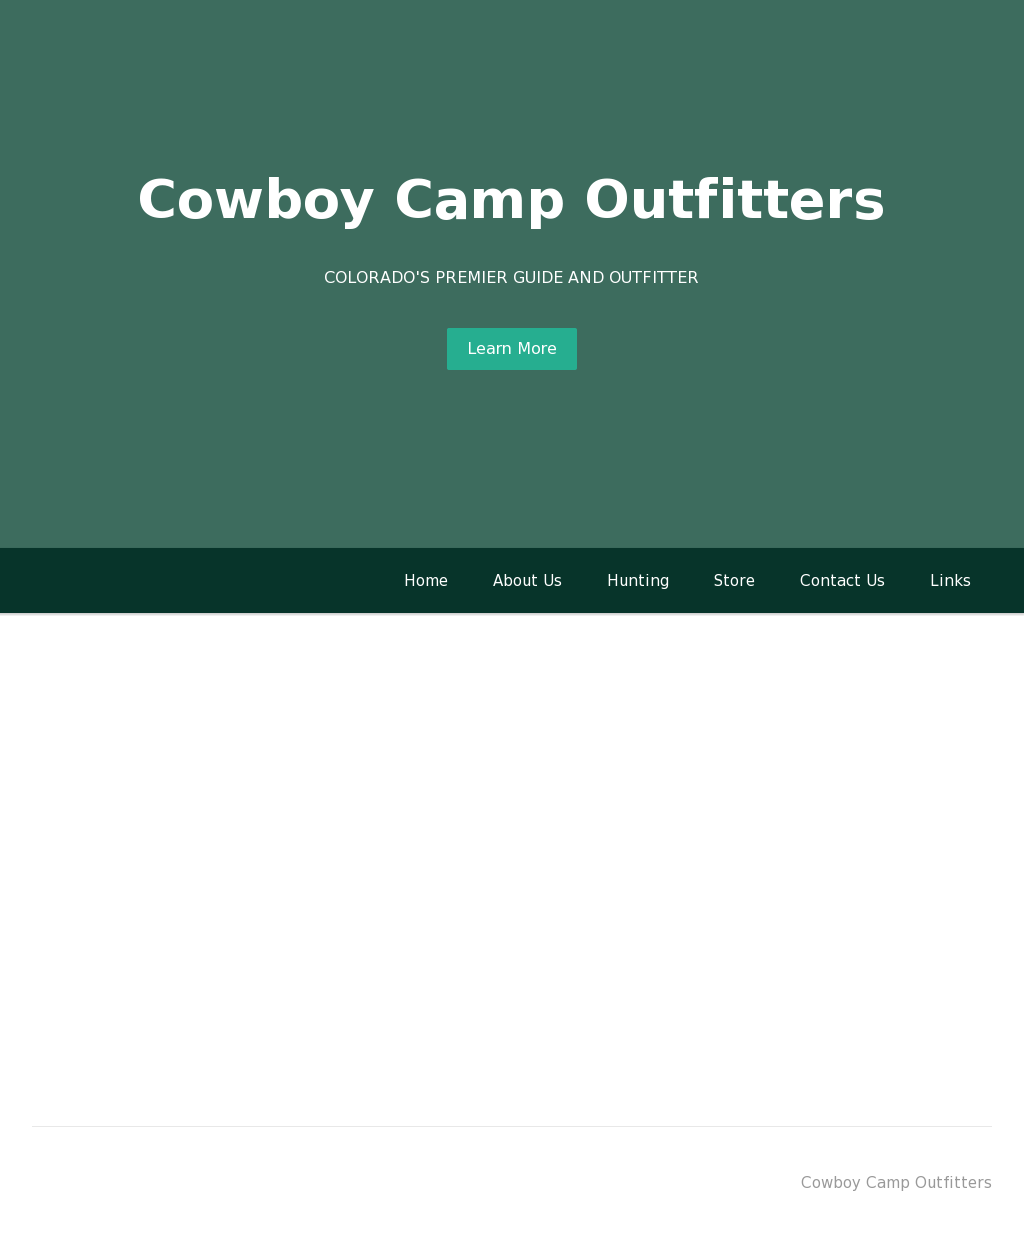 Cowboy Camp Outfitters Competitors, Revenue and Employees